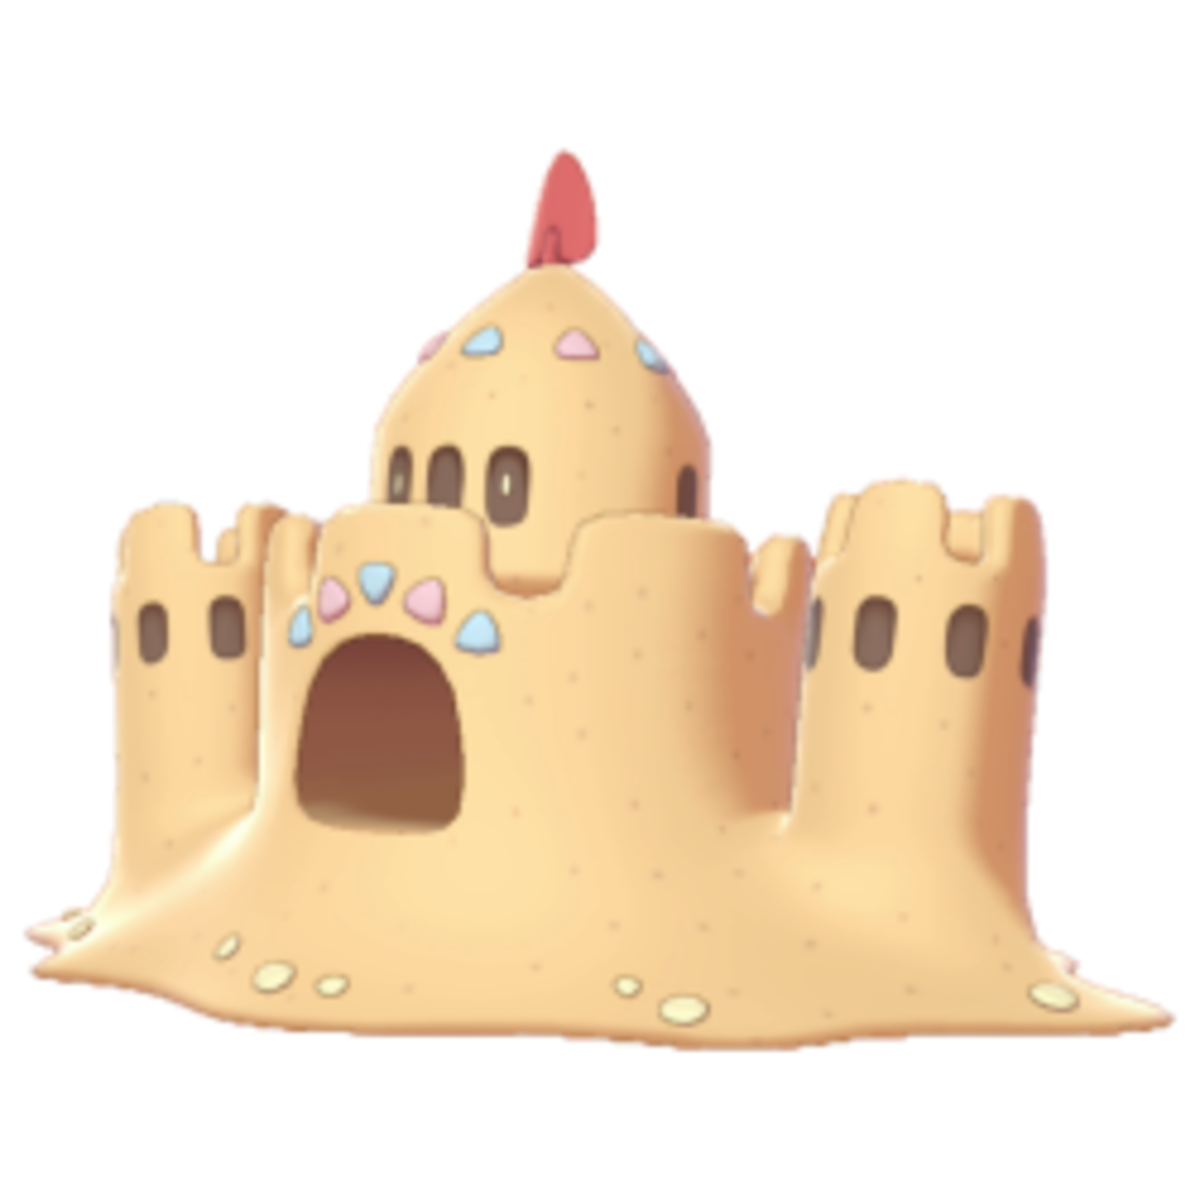 Buried beneath the castle are masses of dried up bones from those whose vitality it has drained.